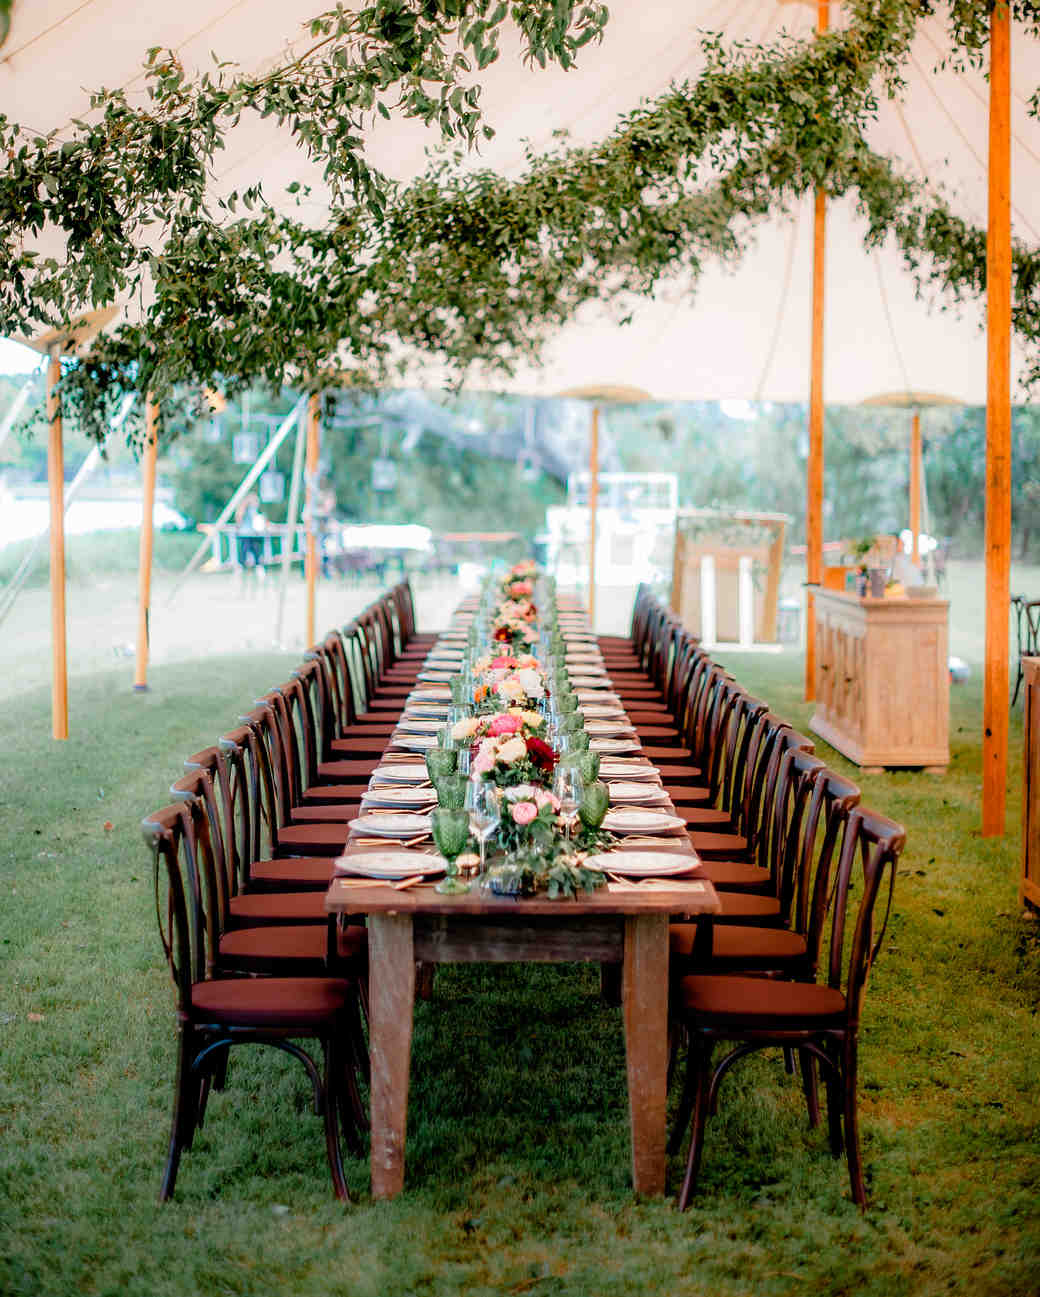 Outdoor Wedding Seating Ideas: 42 Stunning Banquet Tables For Your Reception